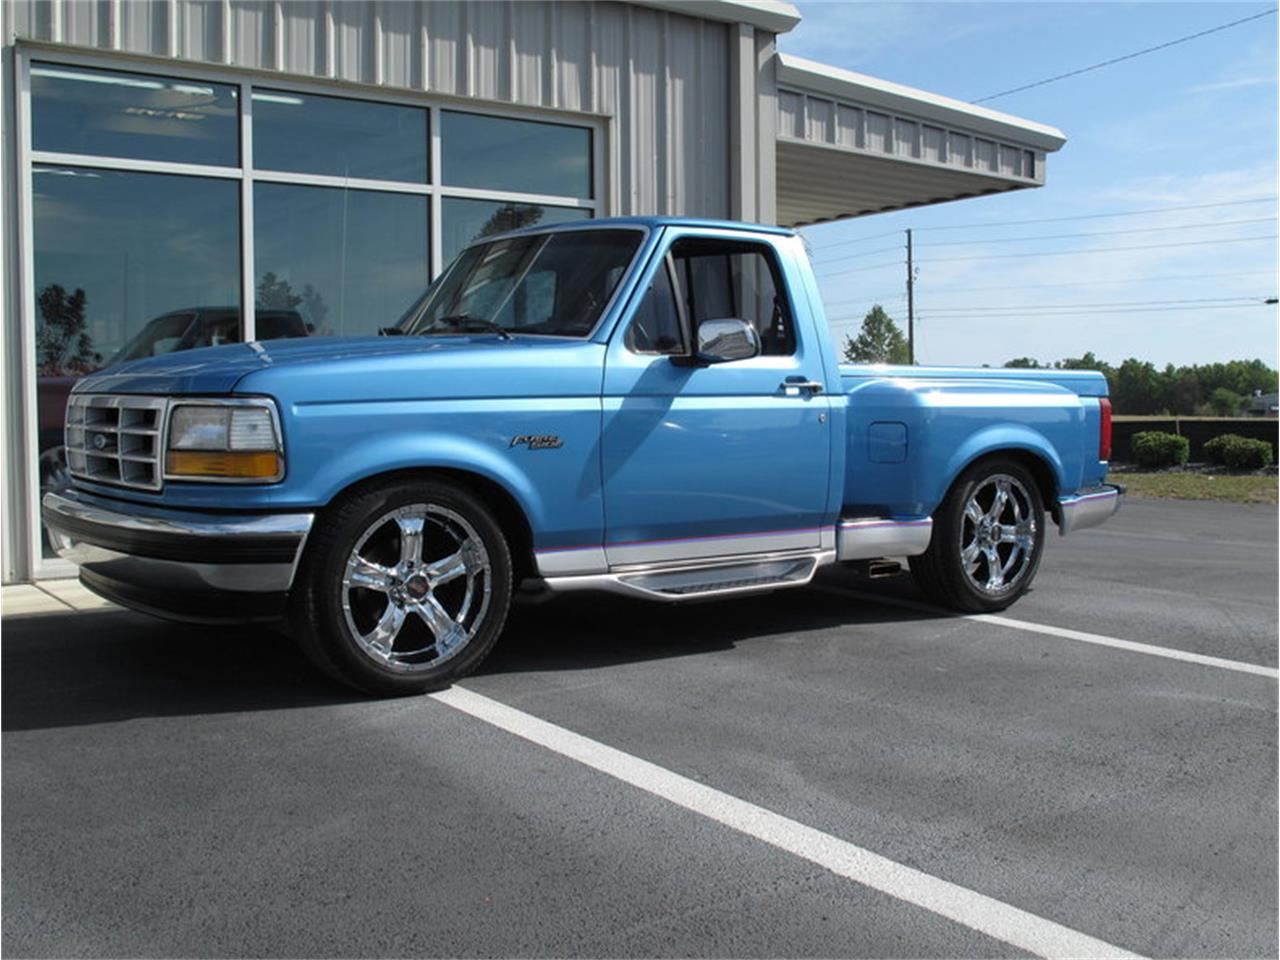 Large picture of 92 f150 na2i